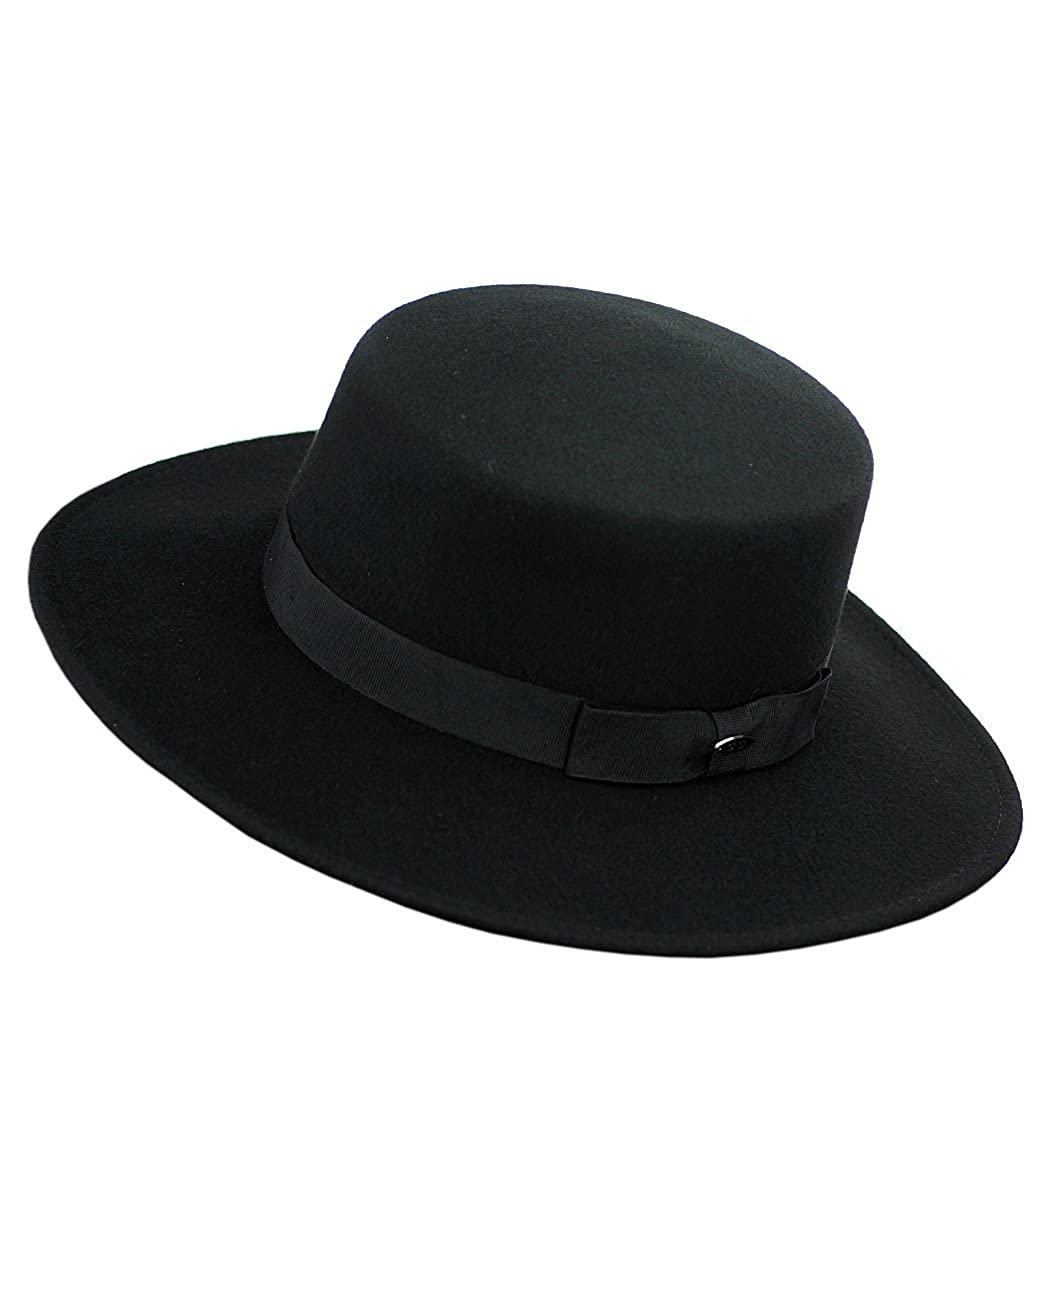 Edwardian Hats, Titanic Hats, Tea Party Hats  Wool Wide Brim Porkpie Fedora Hat w/Simple Band Accent NYFASHION101 $39.99 AT vintagedancer.com